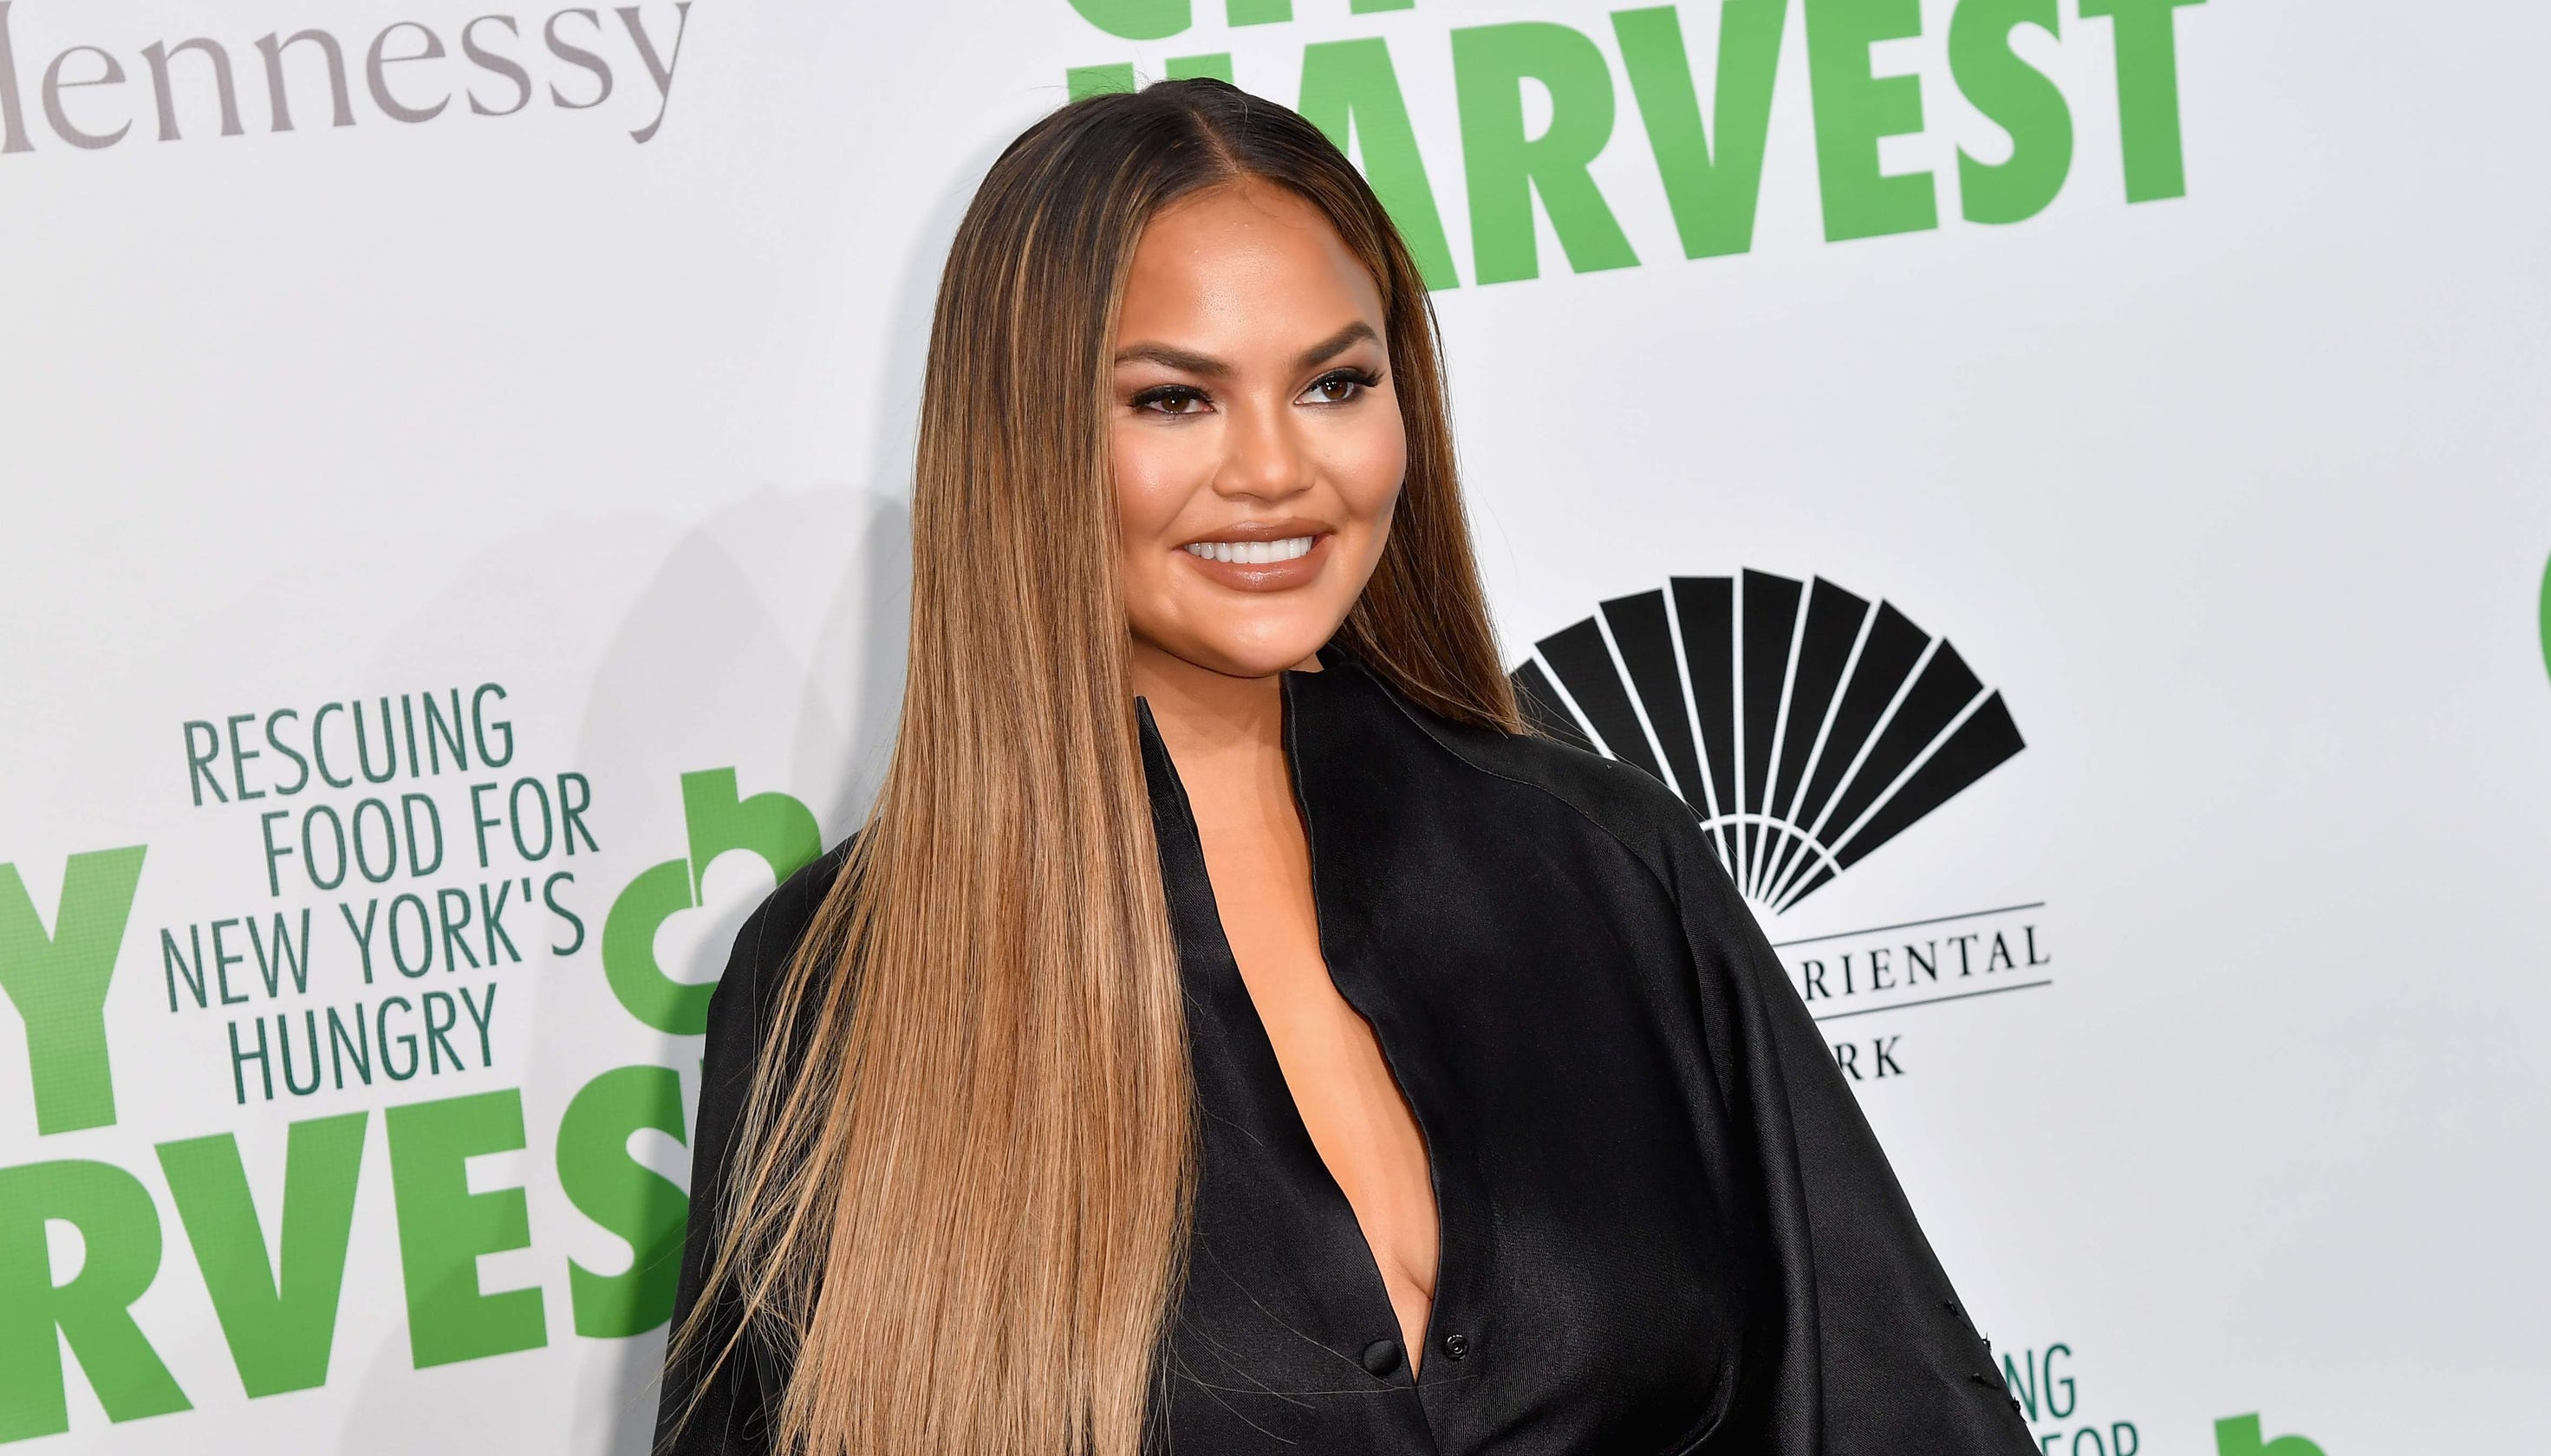 'I had really changed:' Chrissy Teigen talks postpartum depression and hints at more babies